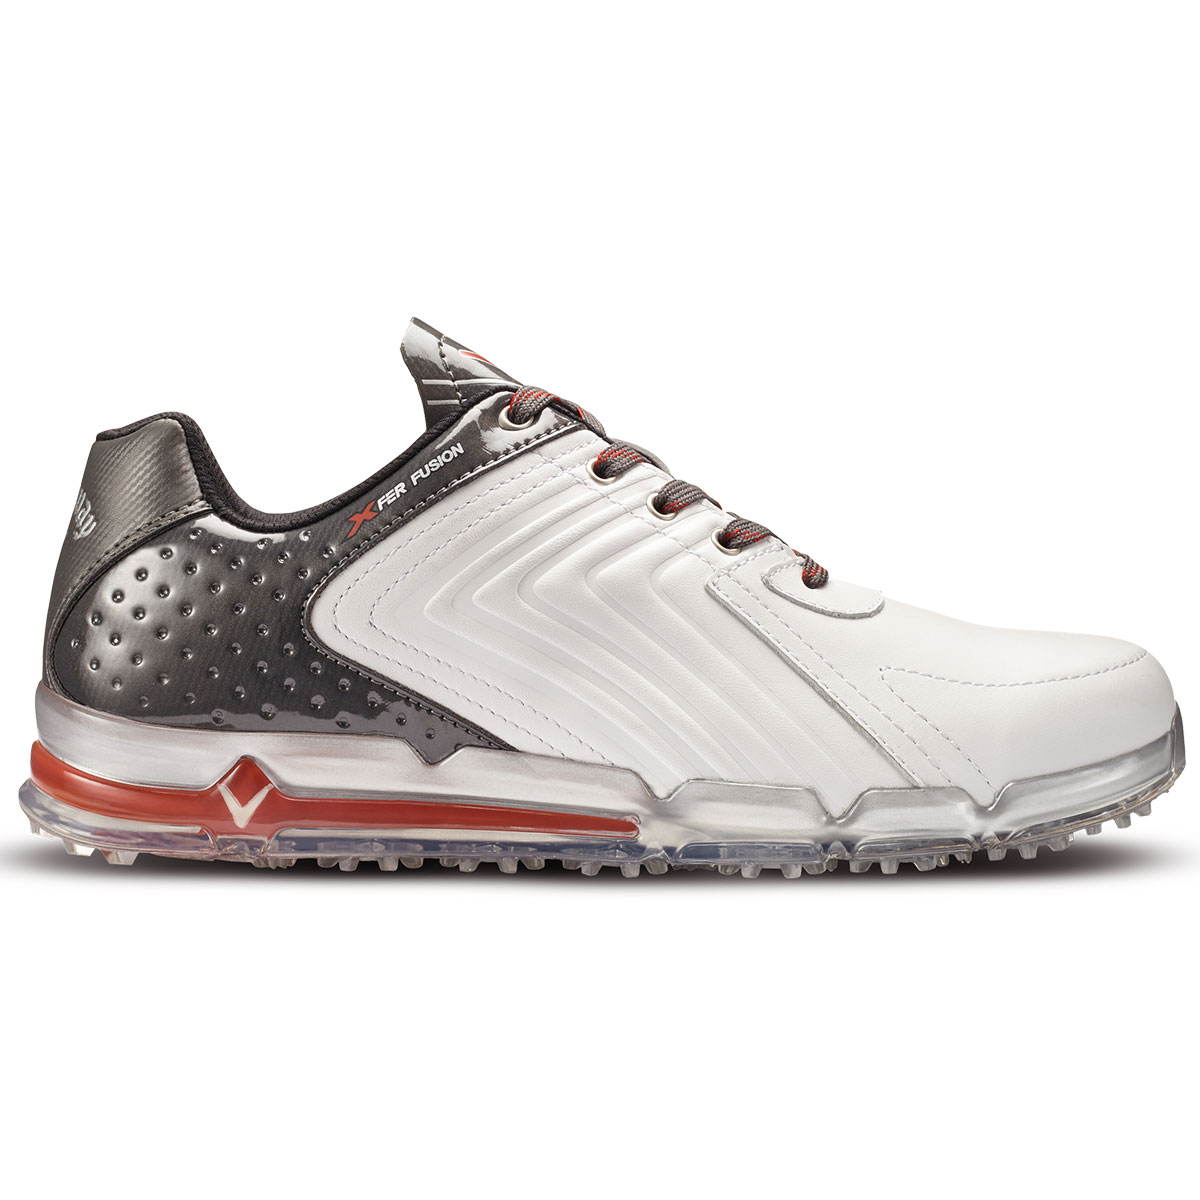 Callaway Golf Shoes M